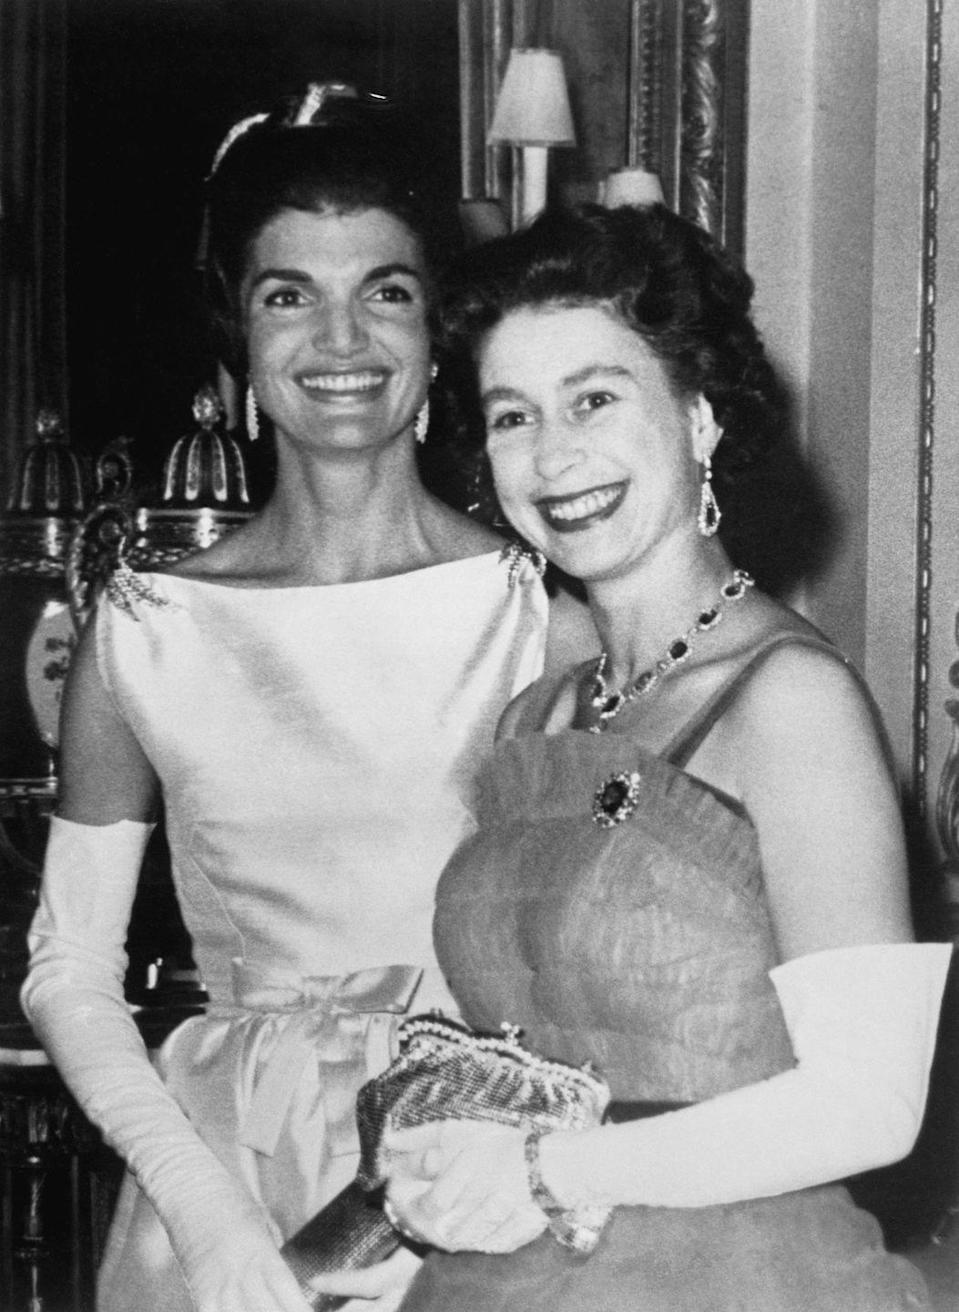 "<p> Jackie Kennedy and Queen Elizabeth pose for photos during an American state visit to Buckingham Palace. The event was the first time an American president dined at the Palace since 1918 and was even <a href=""https://www.townandcountrymag.com/society/tradition/a13128840/john-kennedy-jackie-kennedy-queen-elizabeth-meeting-buckingham-palace/"" rel=""nofollow noopener"" target=""_blank"" data-ylk=""slk:depicted on Season 2 of The Crown."" class=""link rapid-noclick-resp"">depicted on Season 2 of <em>The Crown.</em> </a></p>"